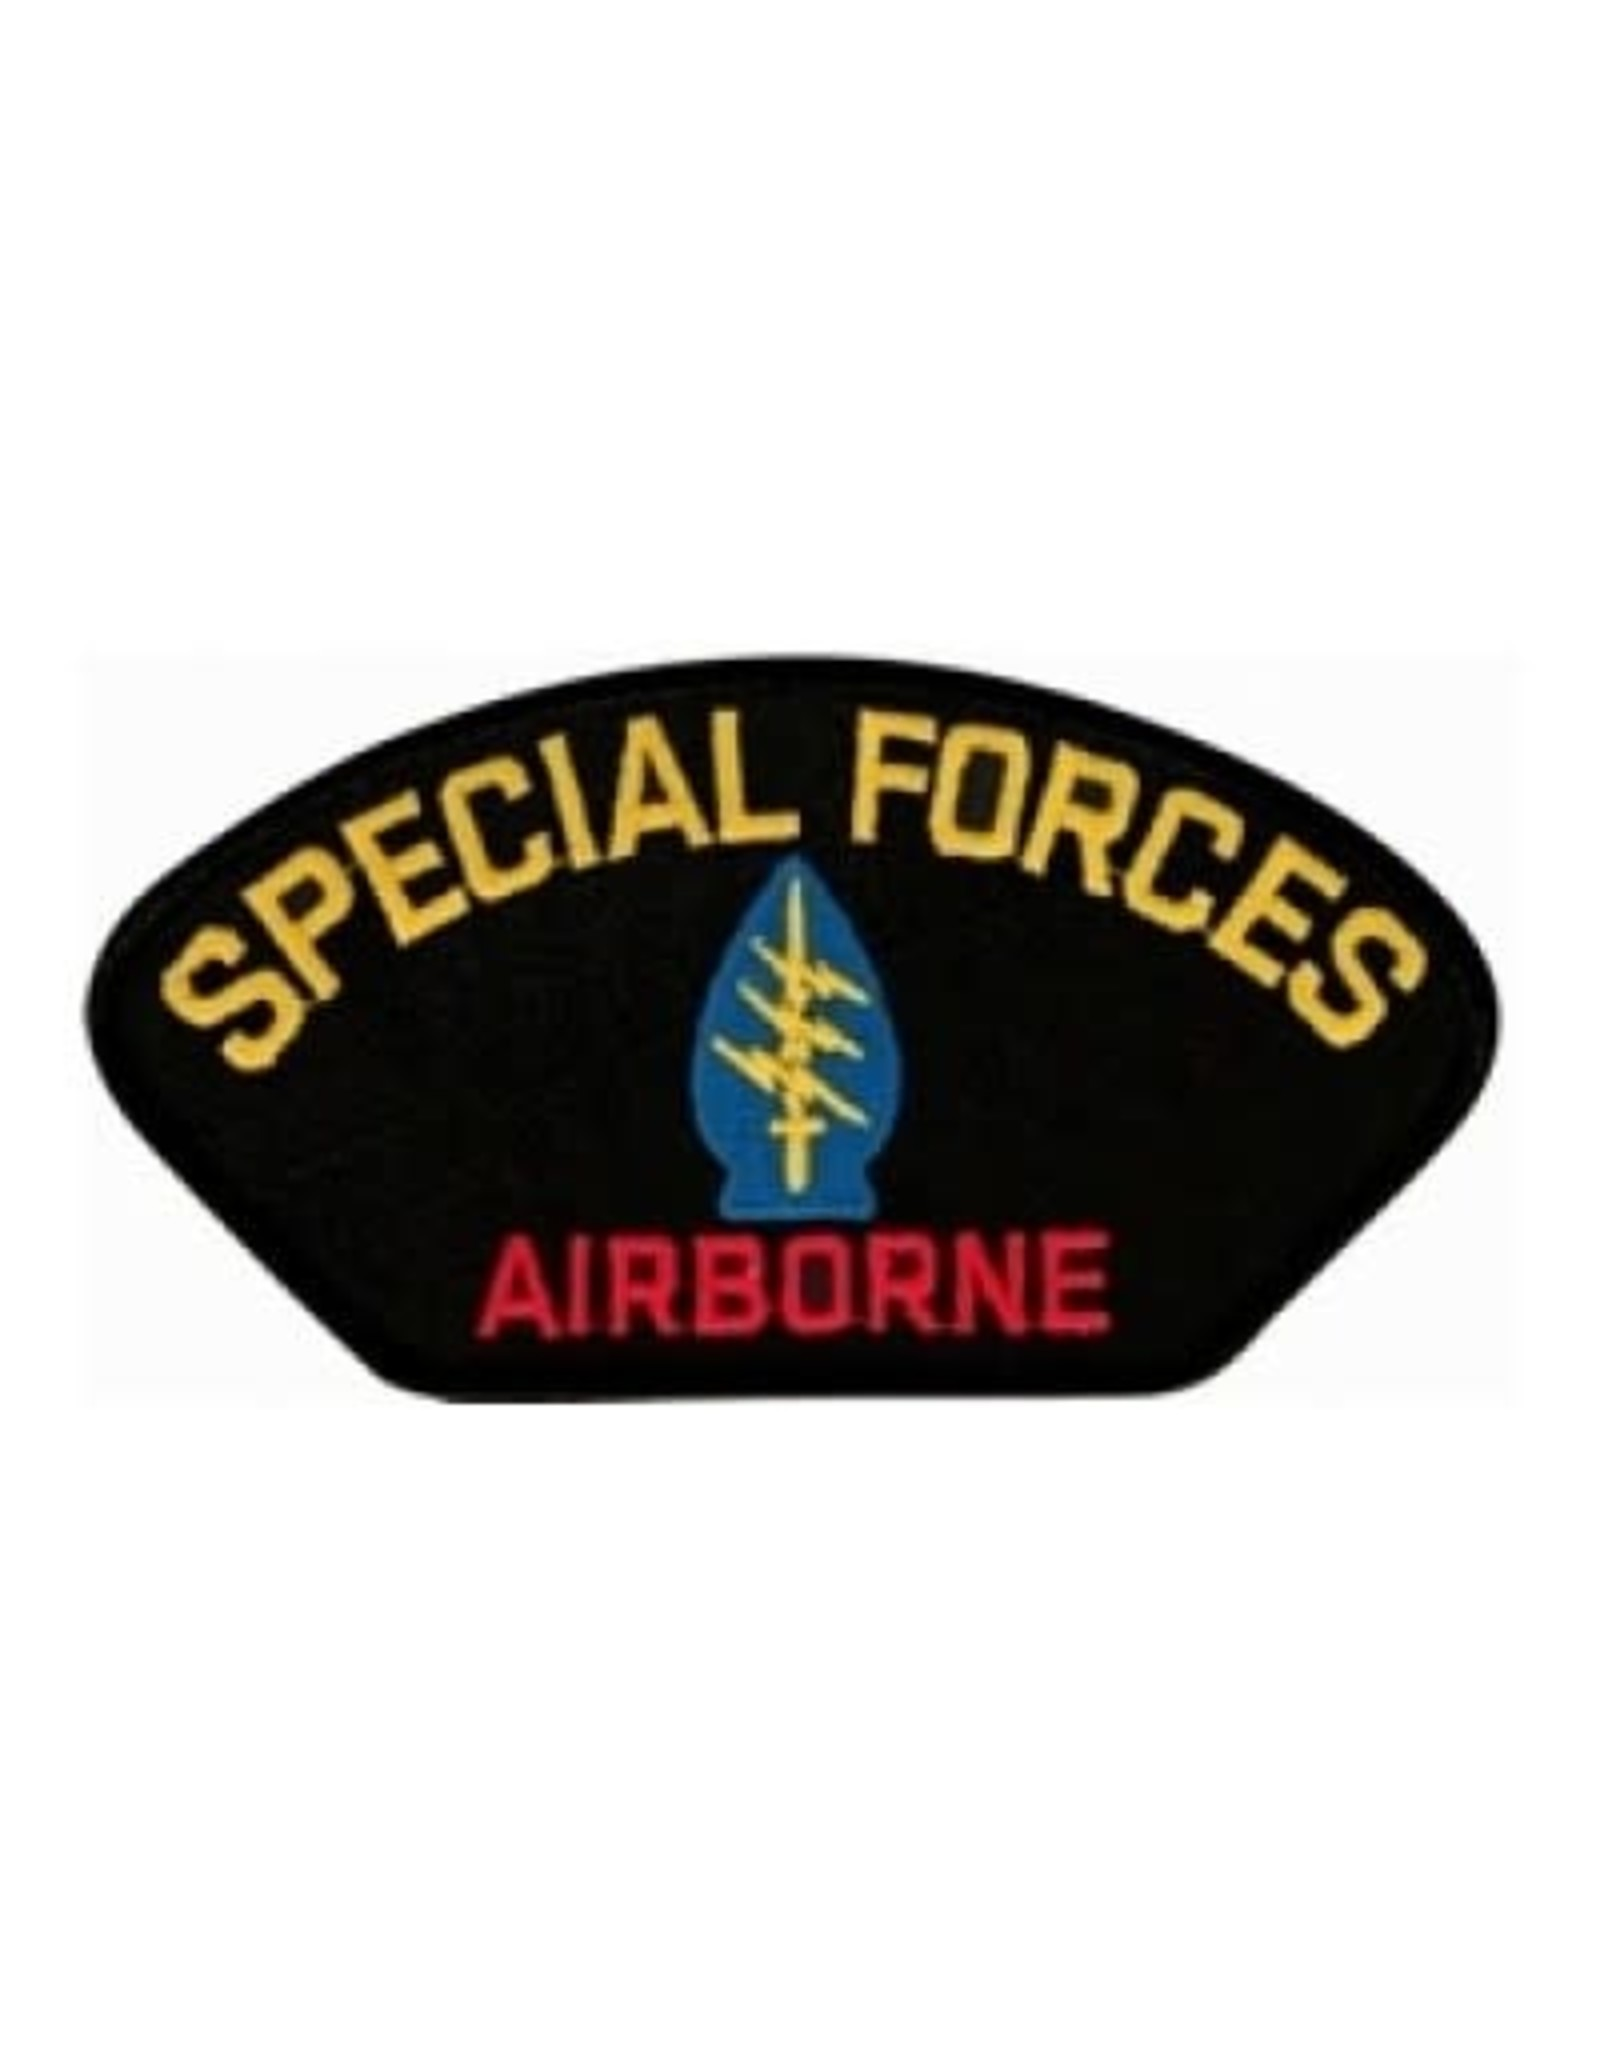 "MidMil Special Forces Airborne Patch with Emblem 5.2"" wide x 2.7"" high Black"